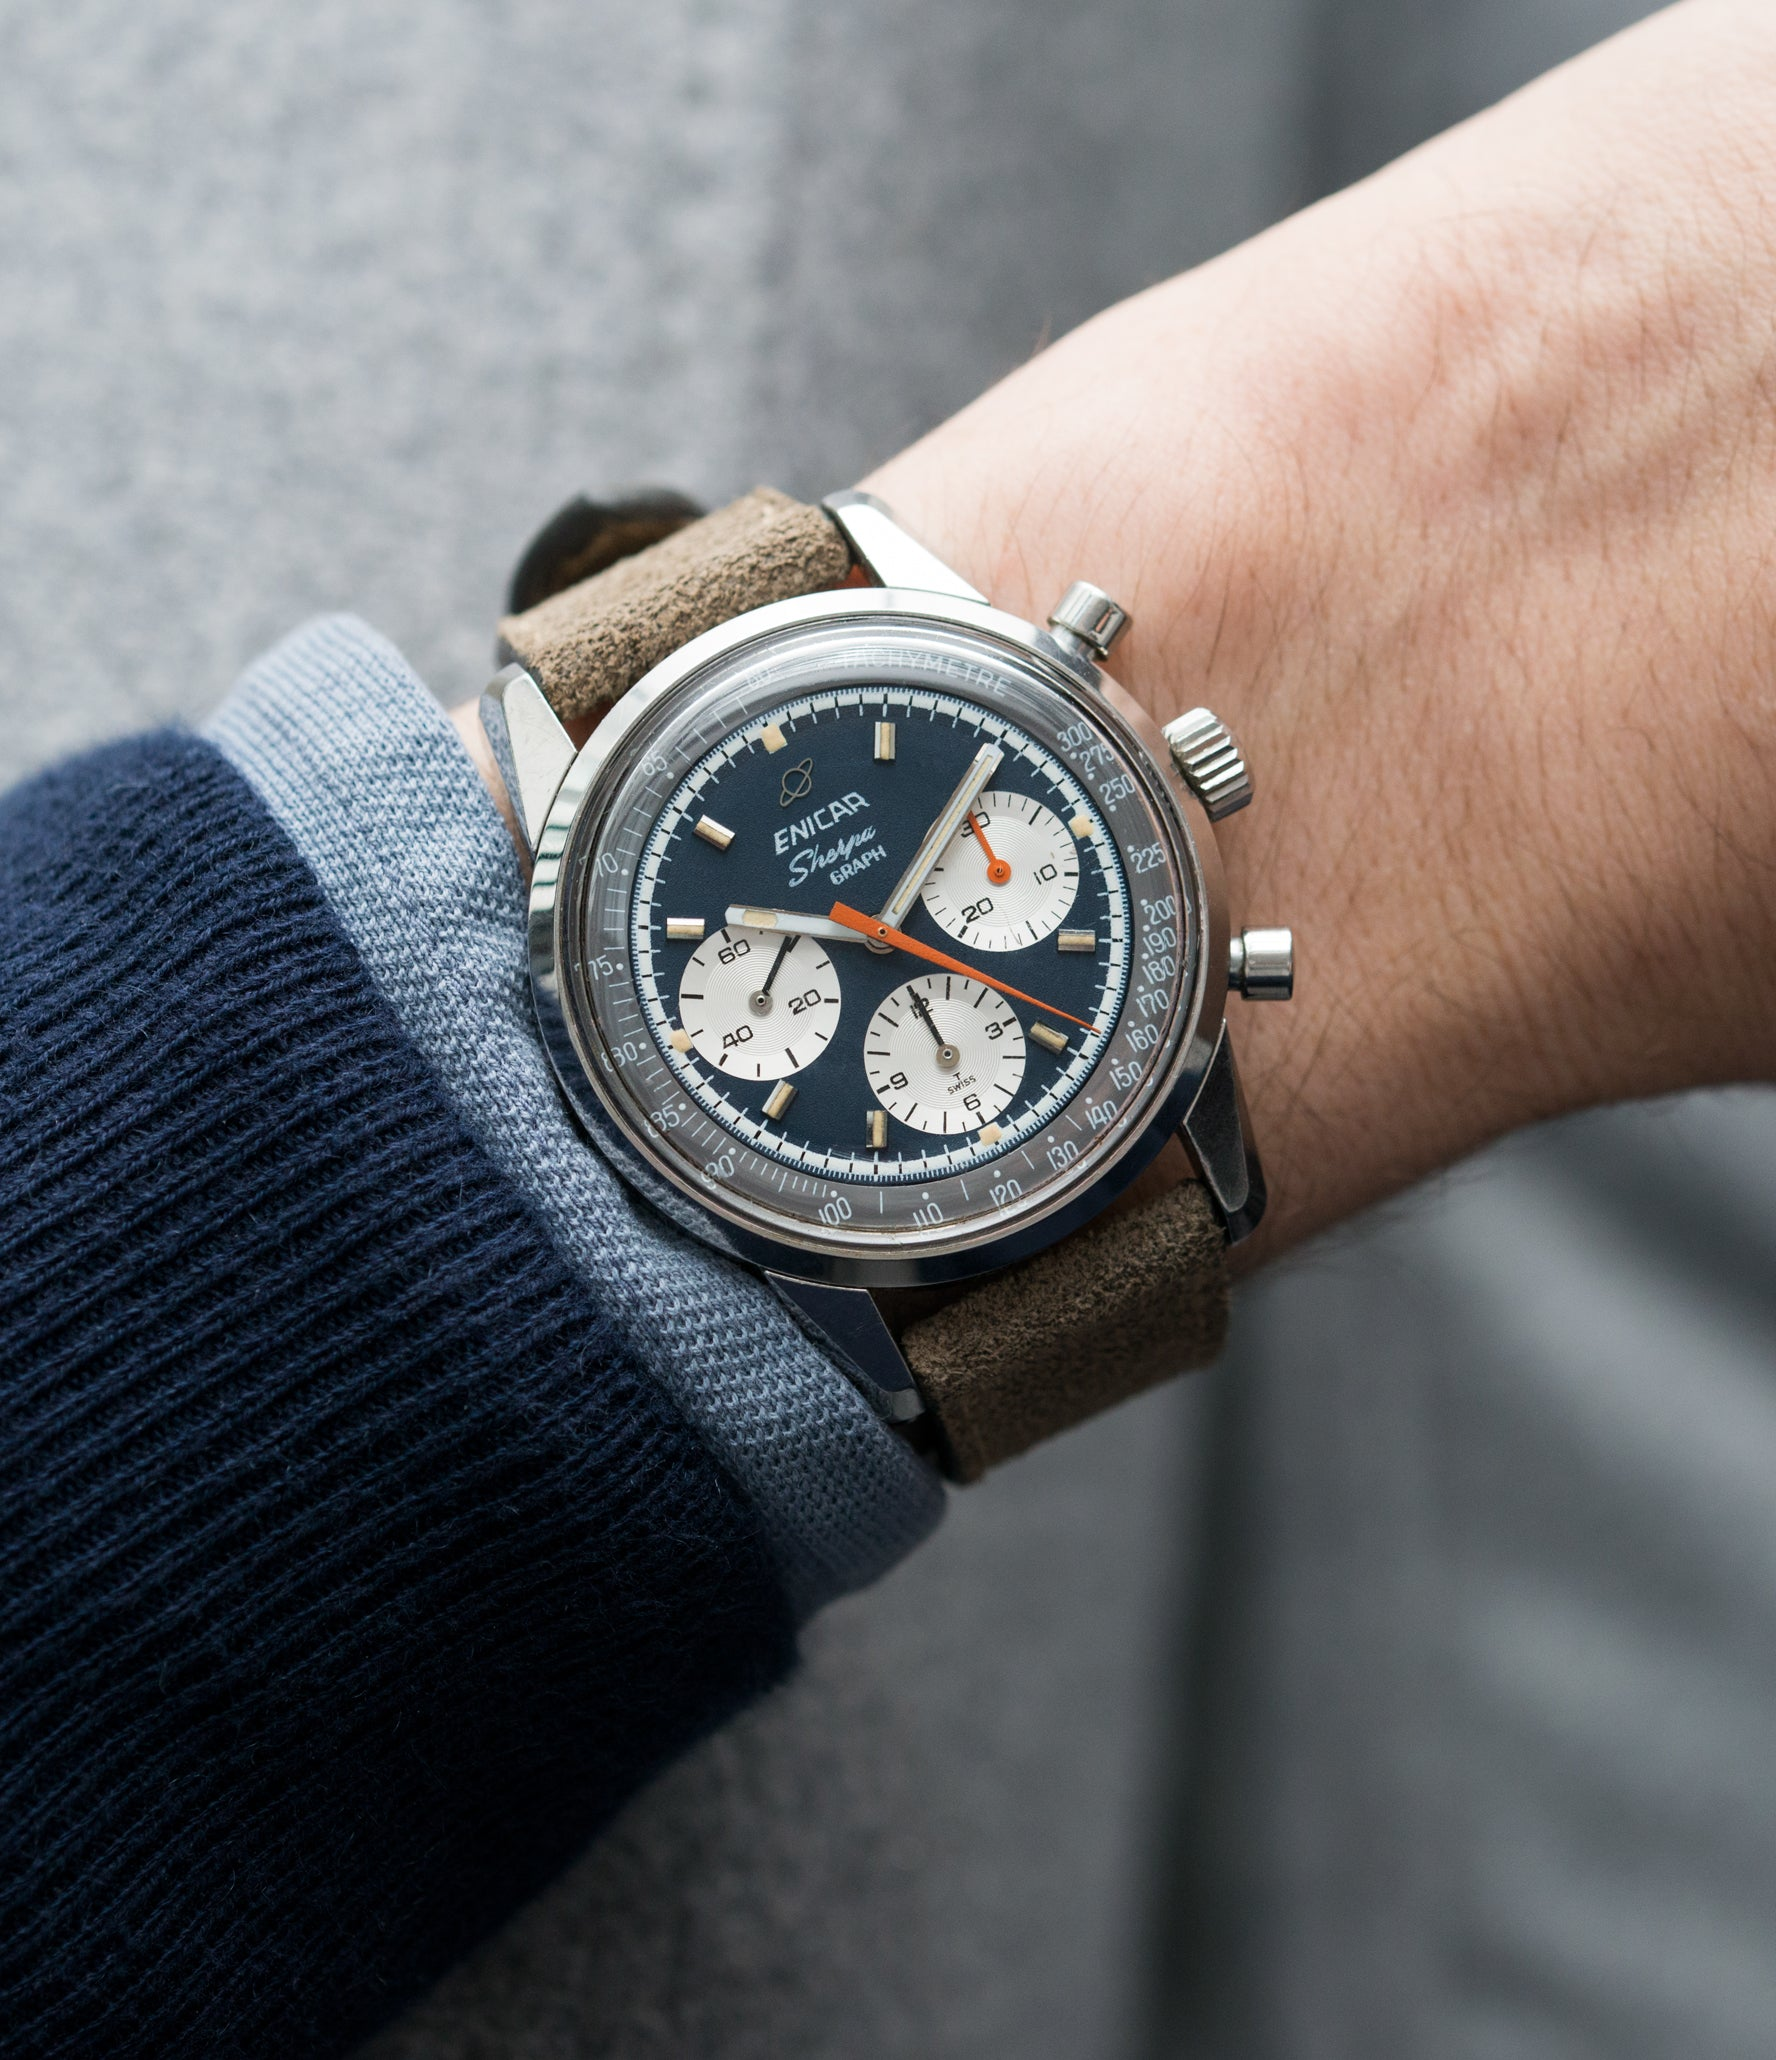 on the wrist Enicar Sherpa Graph 300 Ref. 072-02-01 vintage steel chronograph sport racing watch for sale online at A Collected Man London UK vintage watch specialist